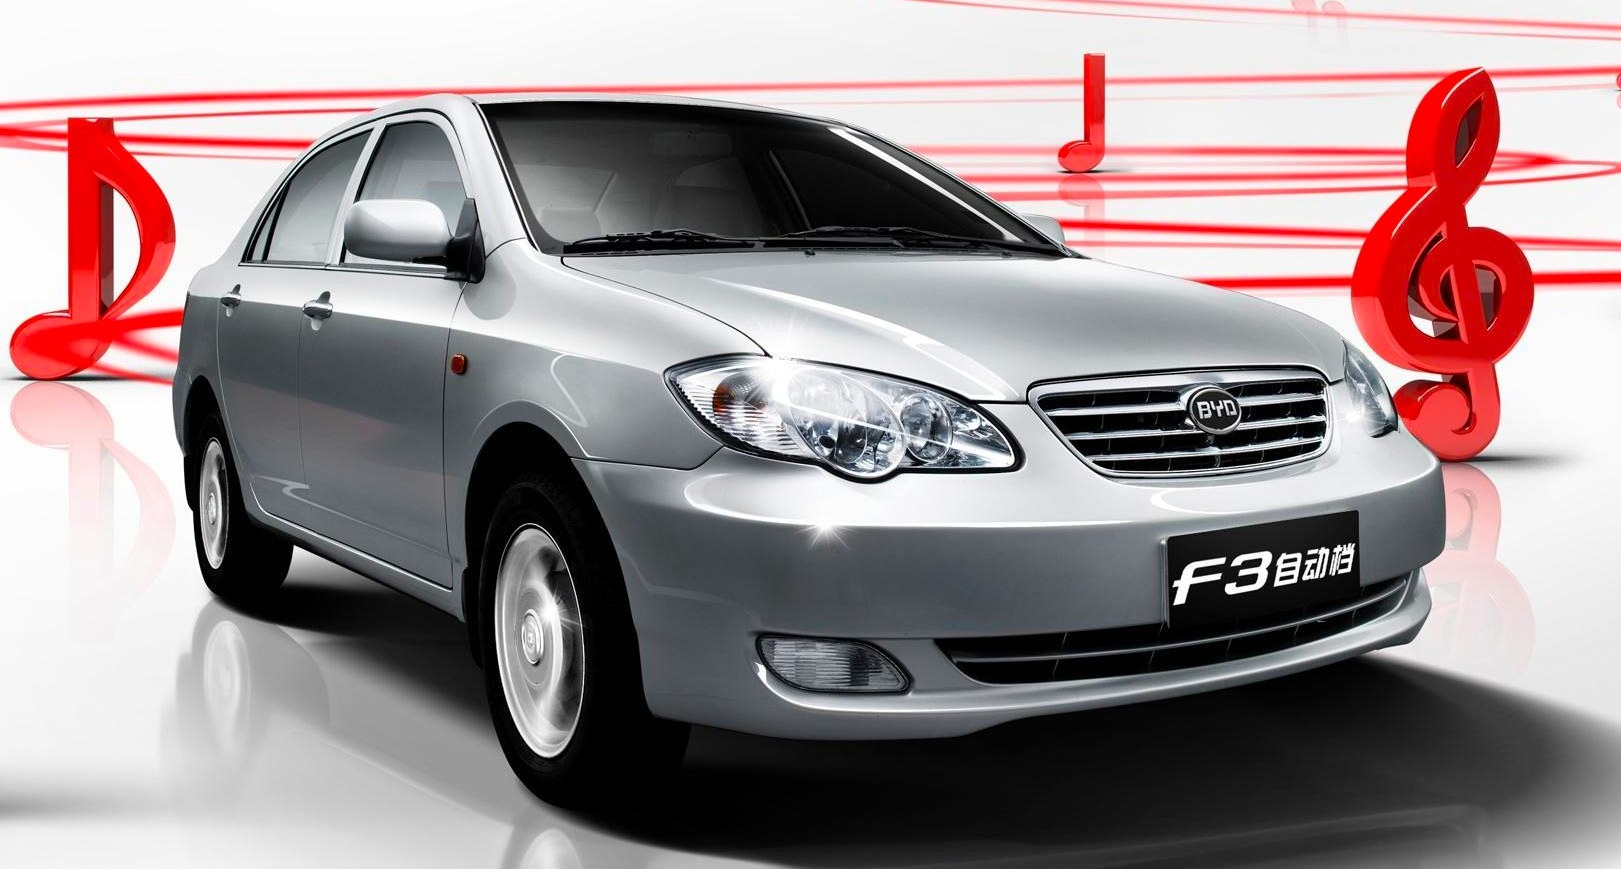 See the top 50 best selling models by clicking on the title - Byd F3